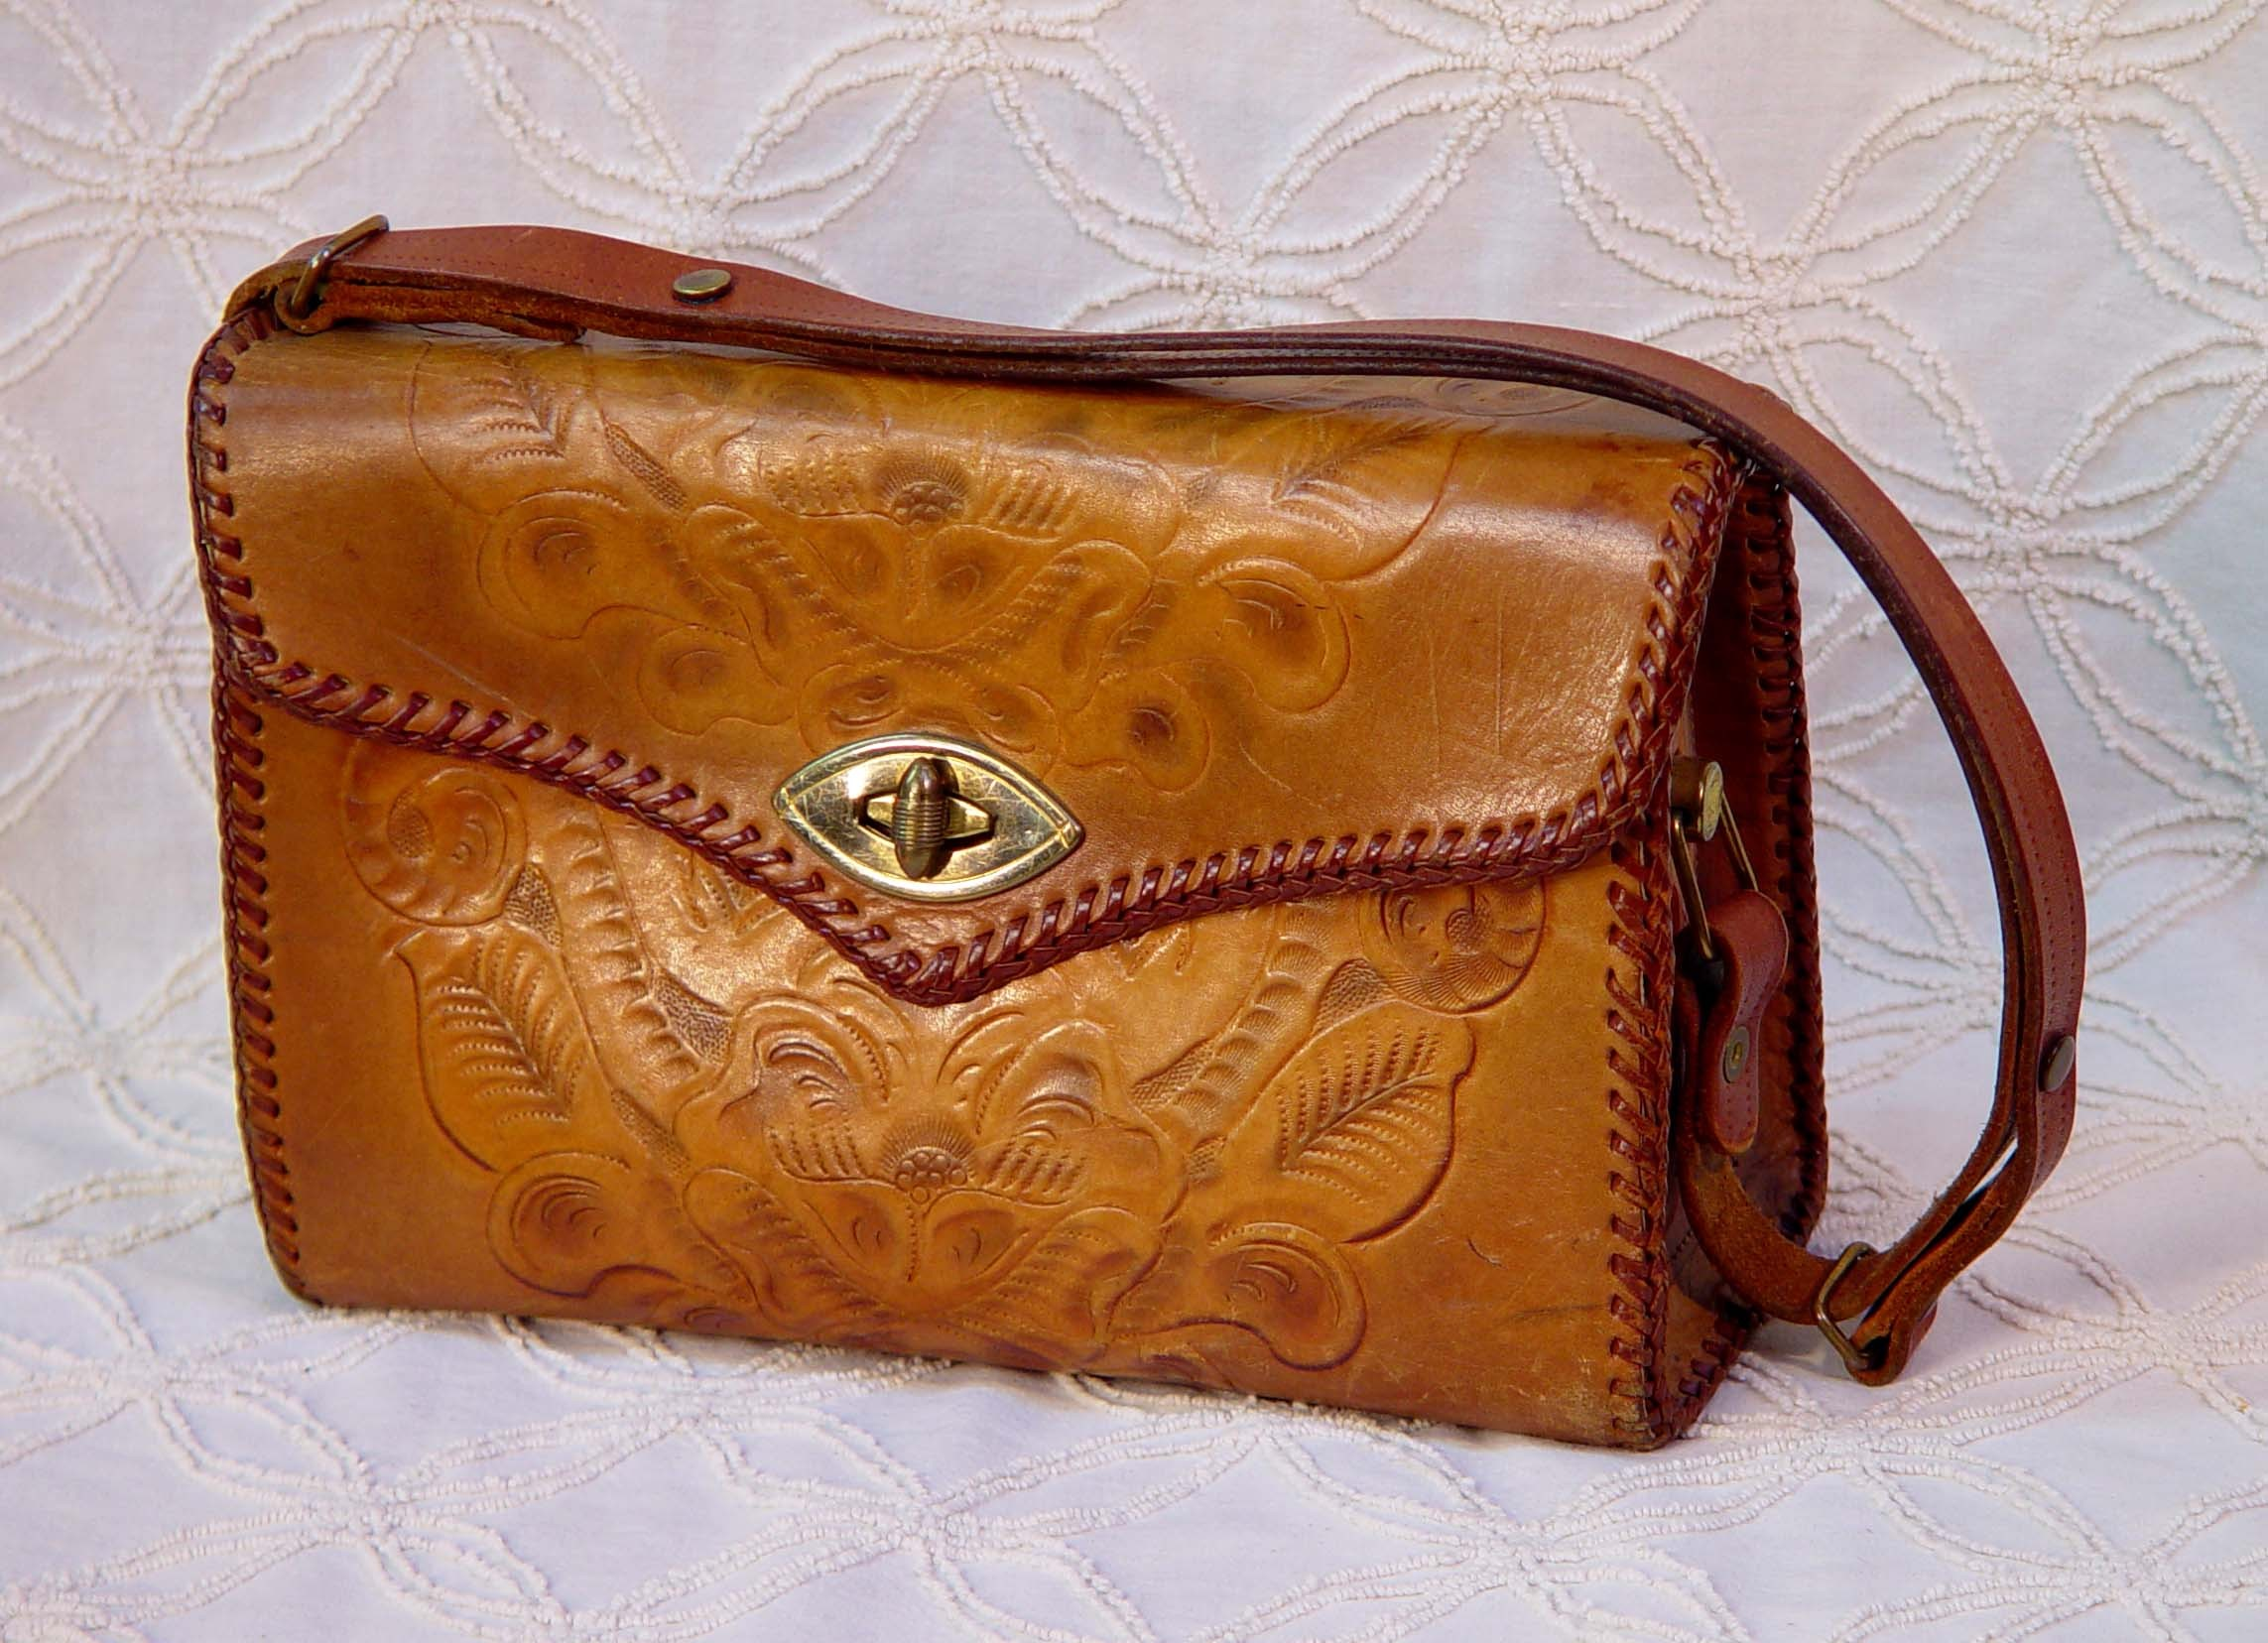 generator wallpaper 1960s American Cowgirl Hand Tooled Leather Bag 2286x1656